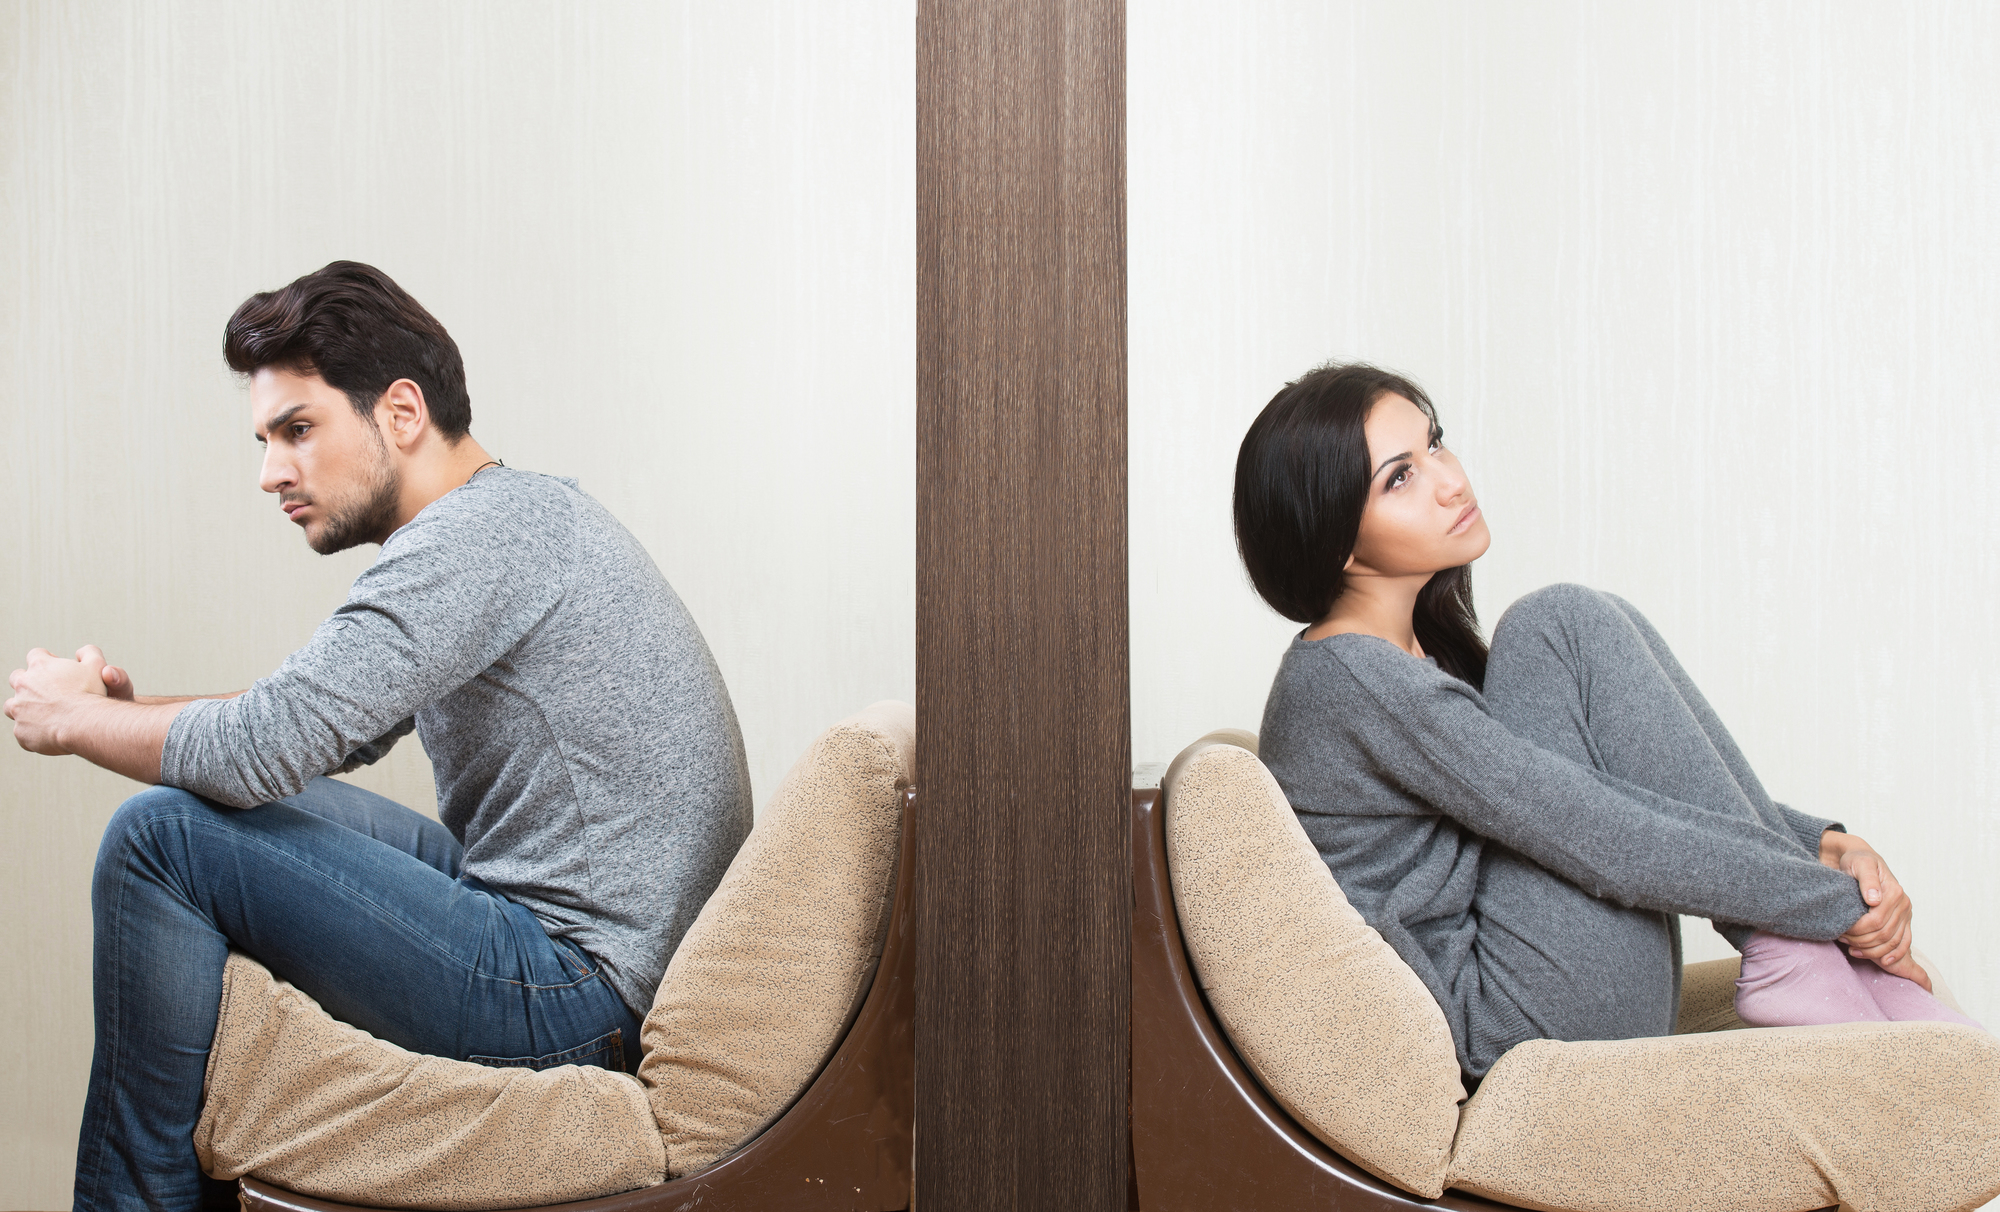 4 Things You Should Do When Going Through a Divorce